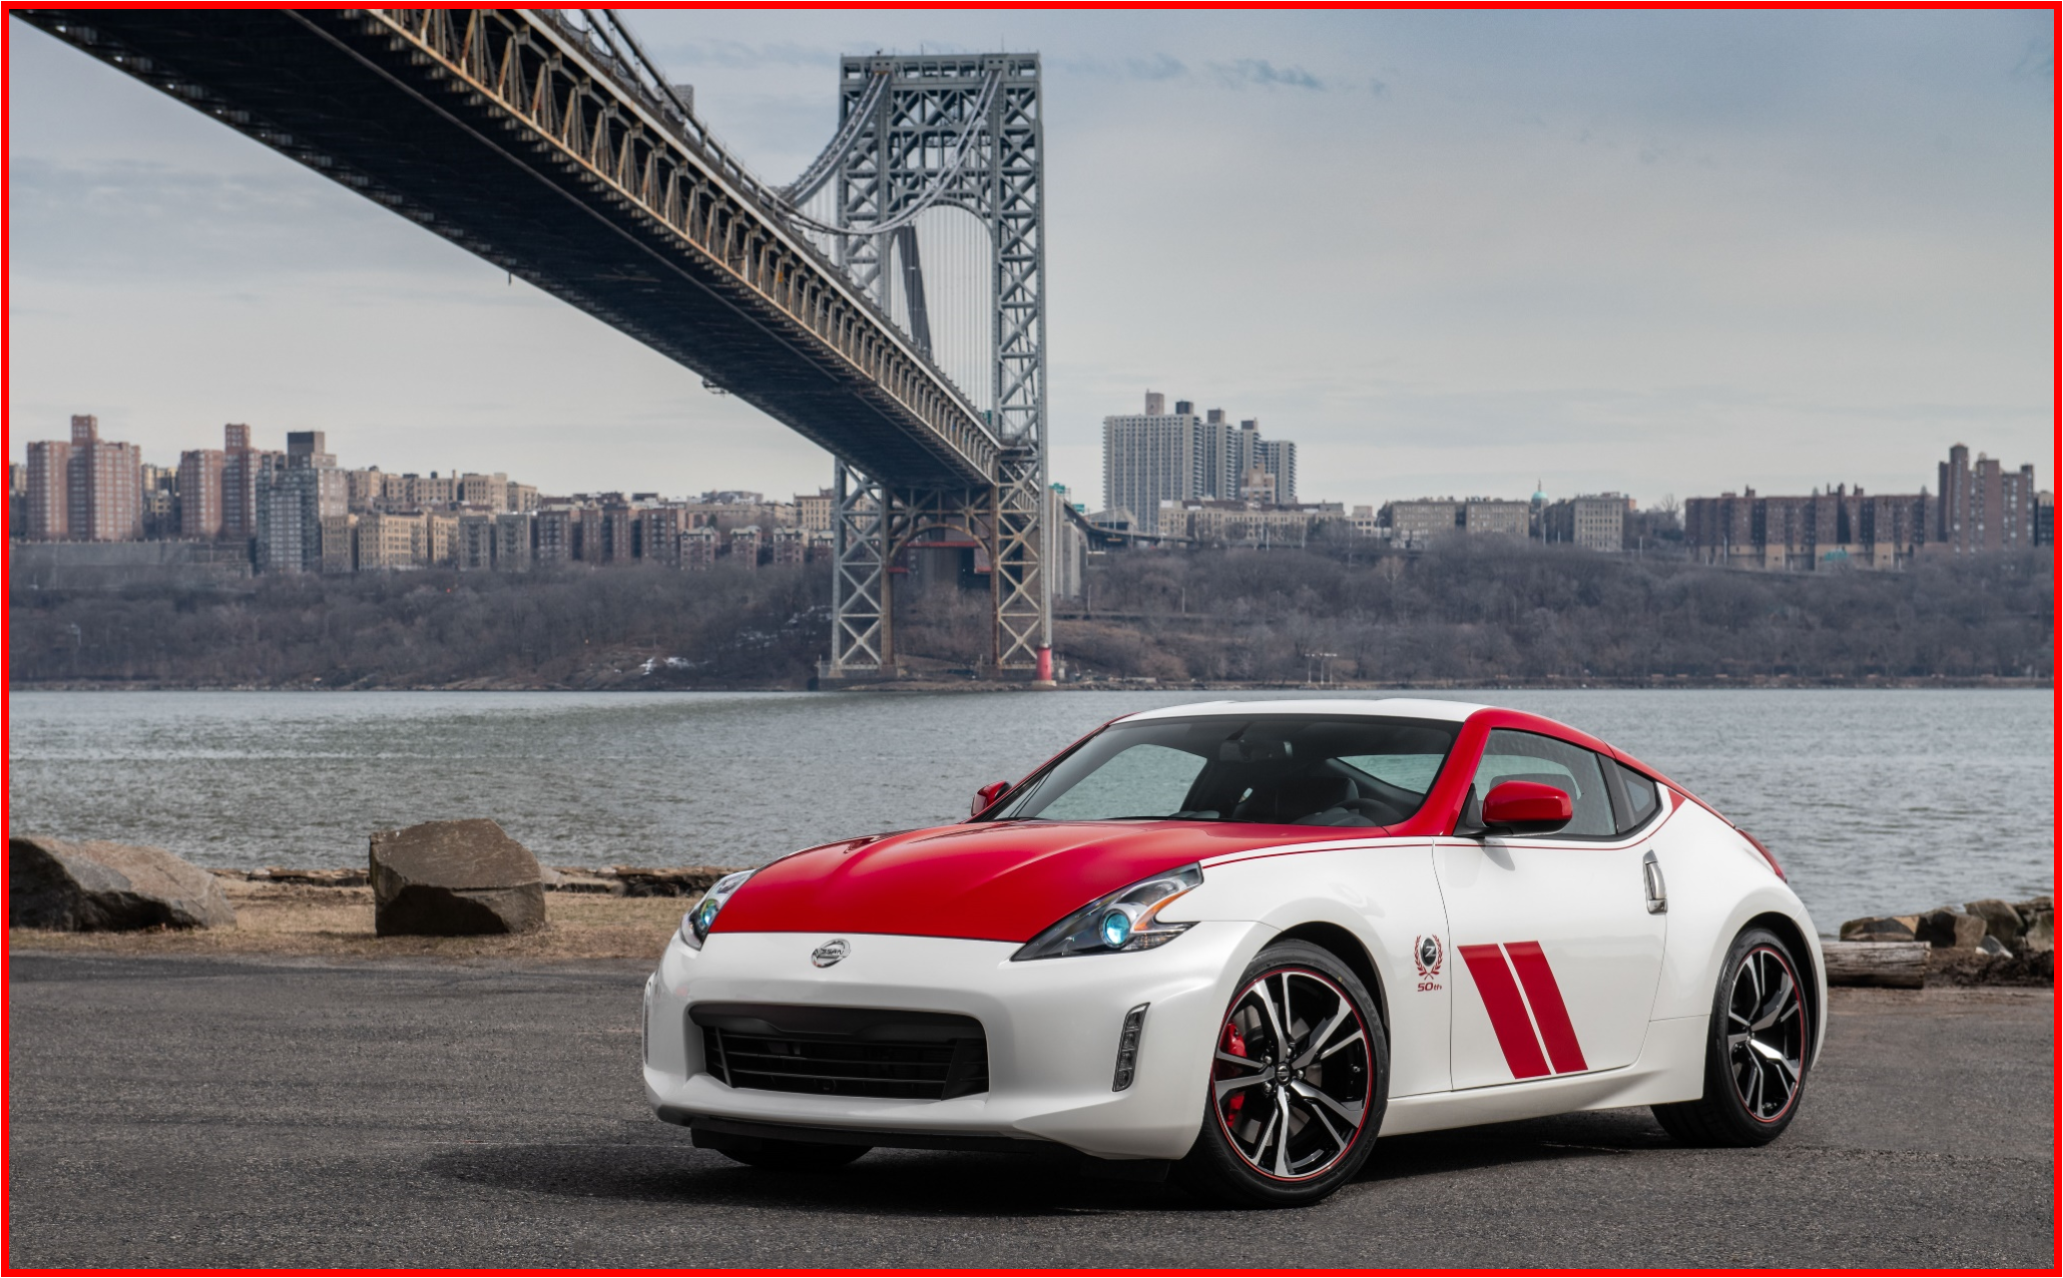 AutoInformed.com on 2020 Nissan 370Z 50th Anniversary Edition - White with Red